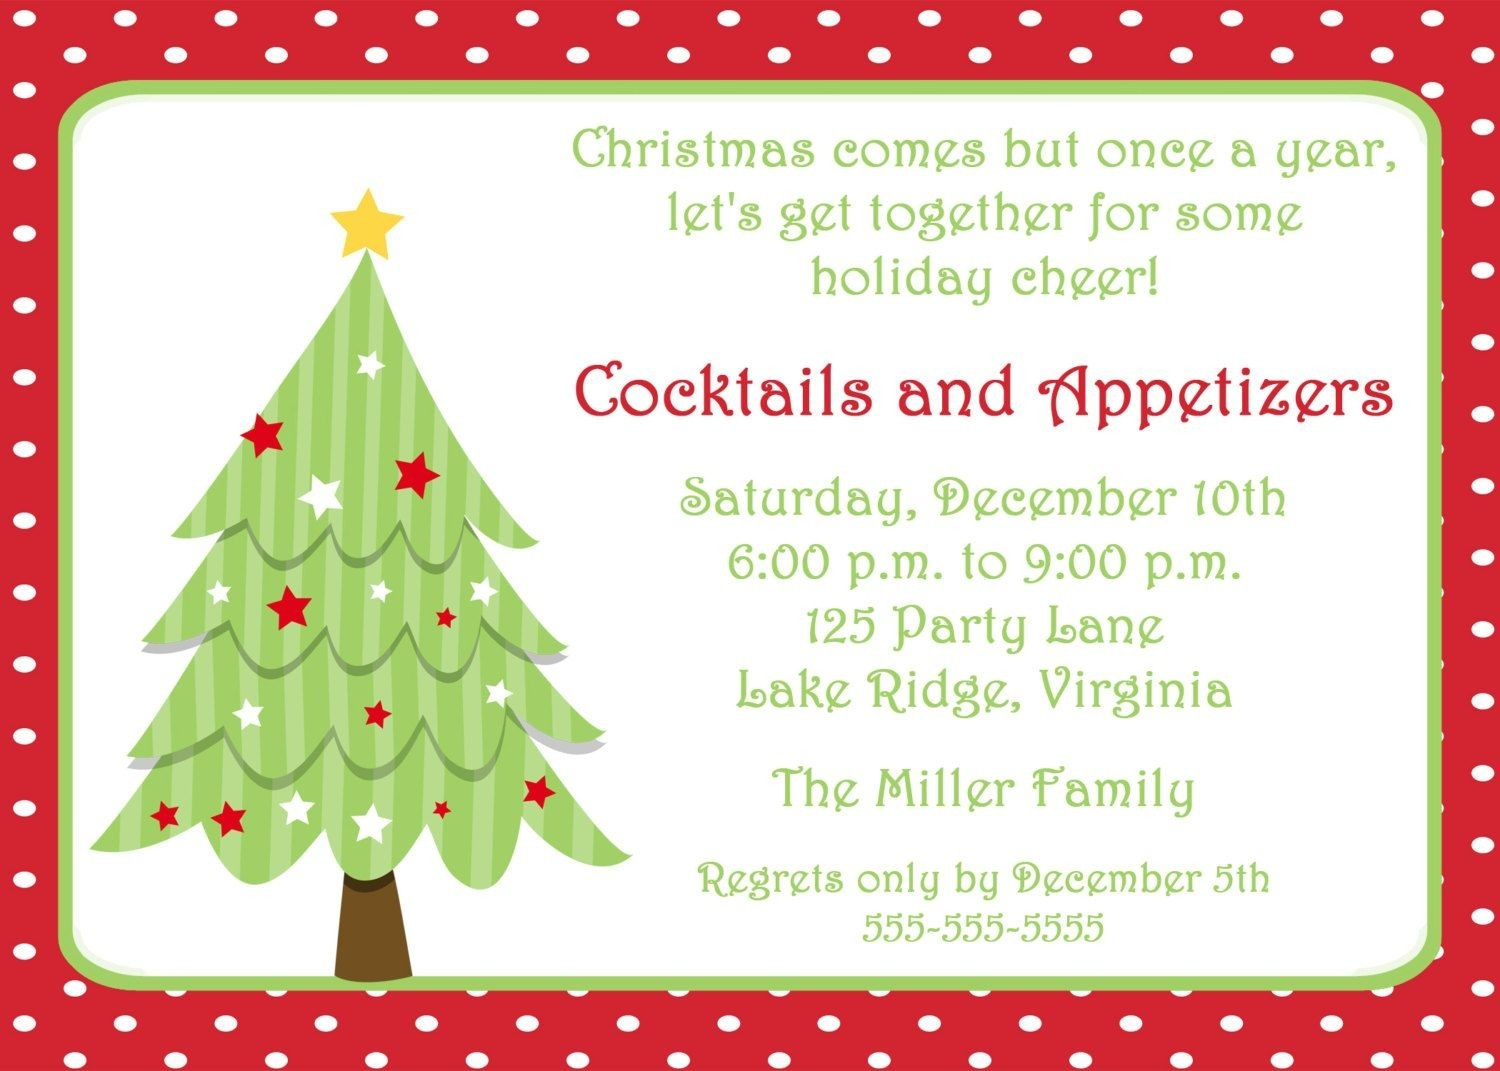 Free Printable Christmas Party Invitations Templates - Loveandrespect - Free Printable Personalized Christmas Invitations